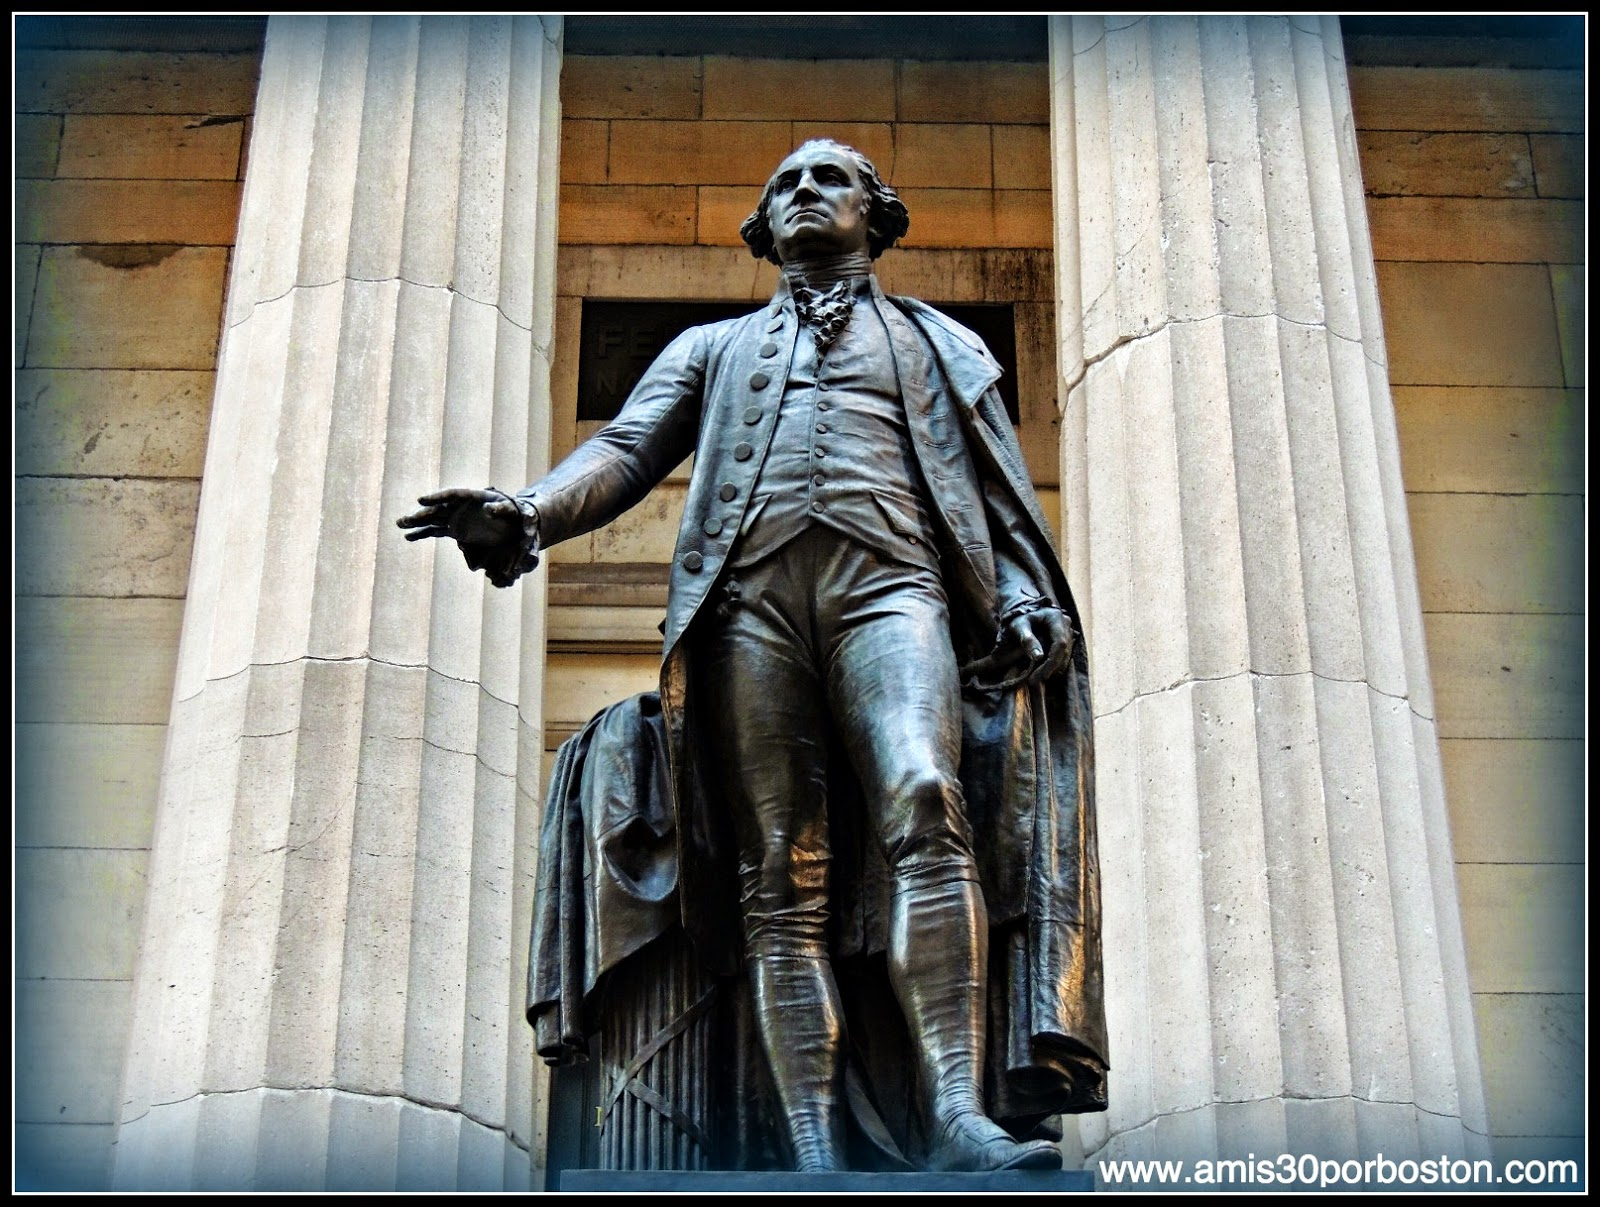 Segunda Visita a Nueva York: Escultura de George Washington en el Federal Hall